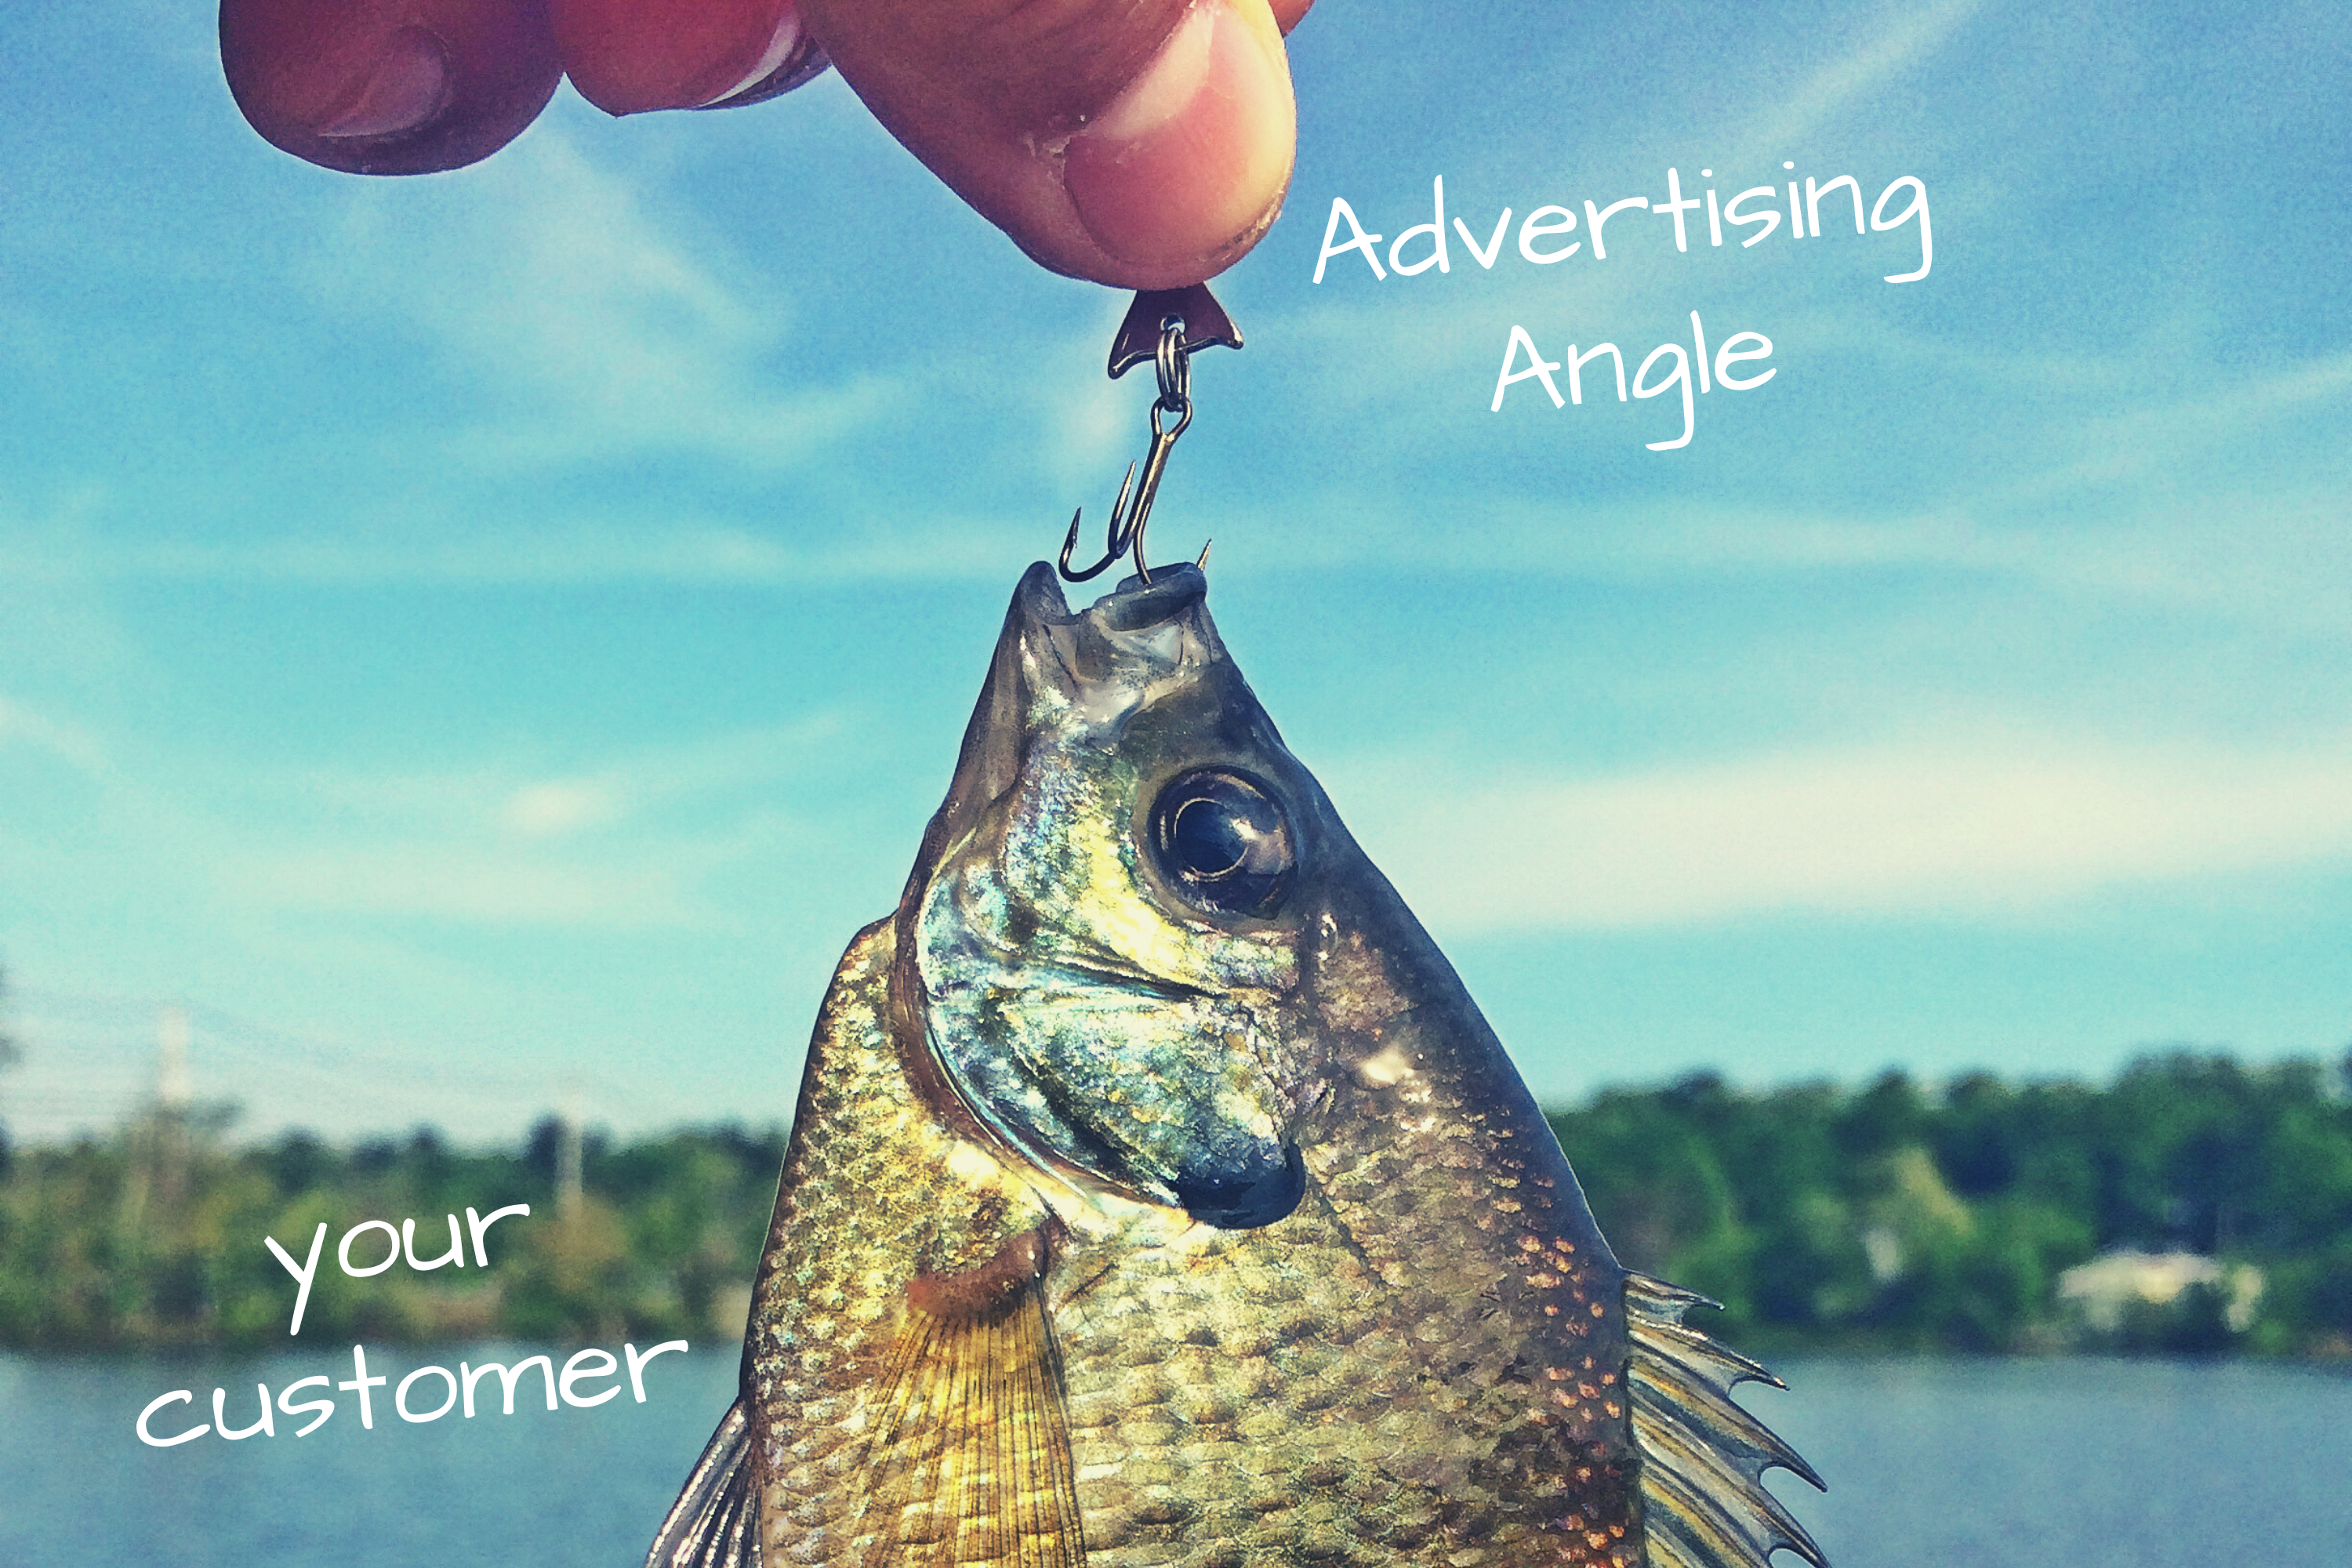 advertising angles that capture customers